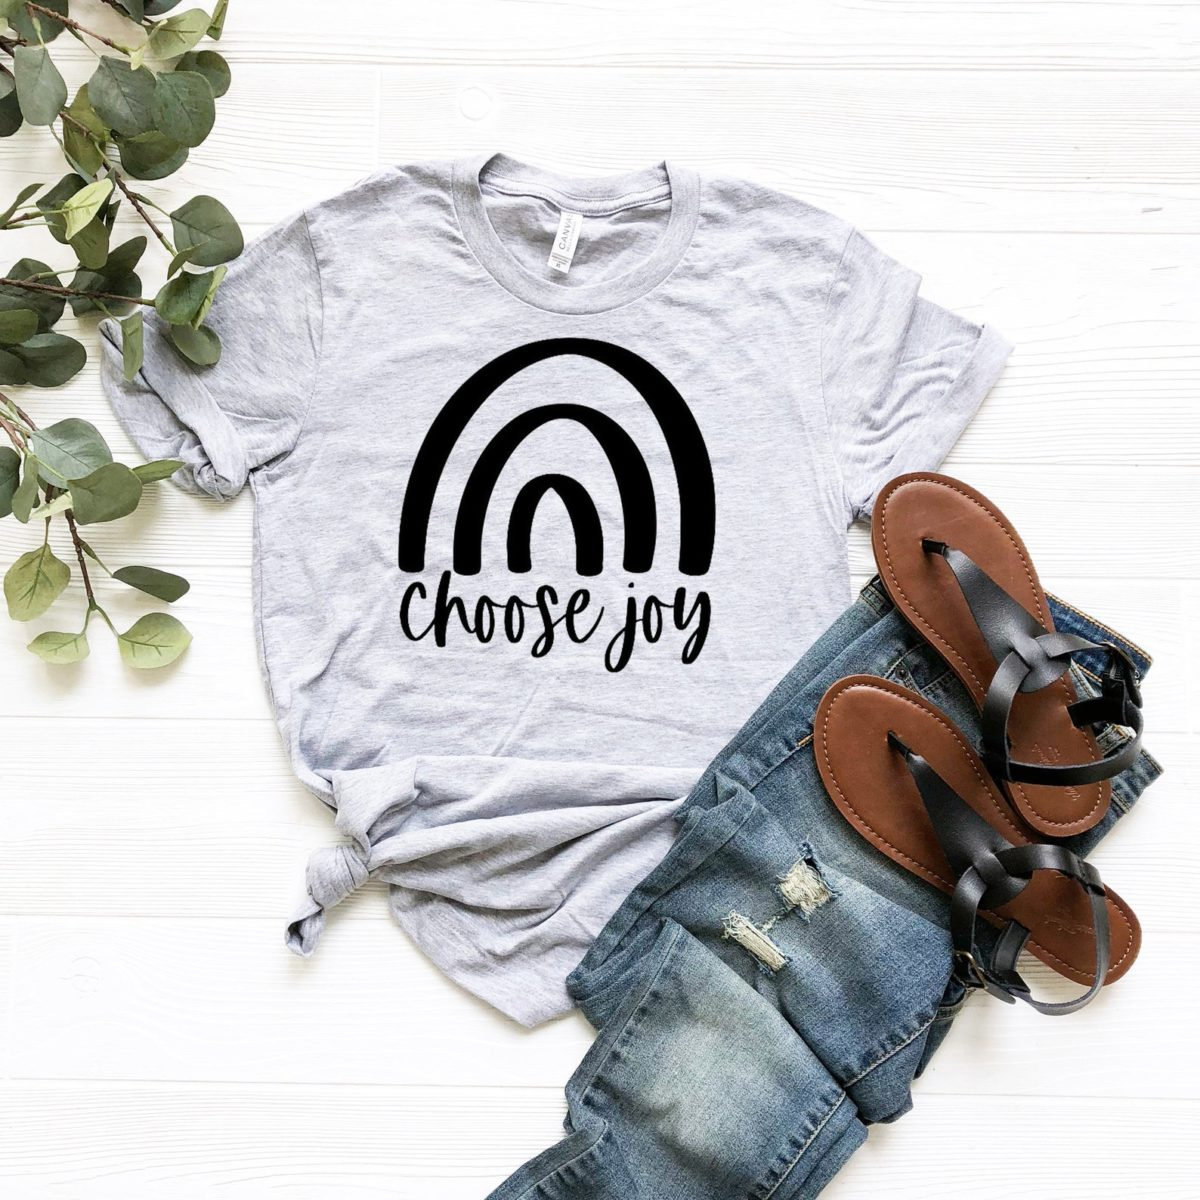 26 awesome etsy t-shirts that send a positive message and make great gifts | parenting questions | mamas uncut il 1588xn.2867075093 2wle